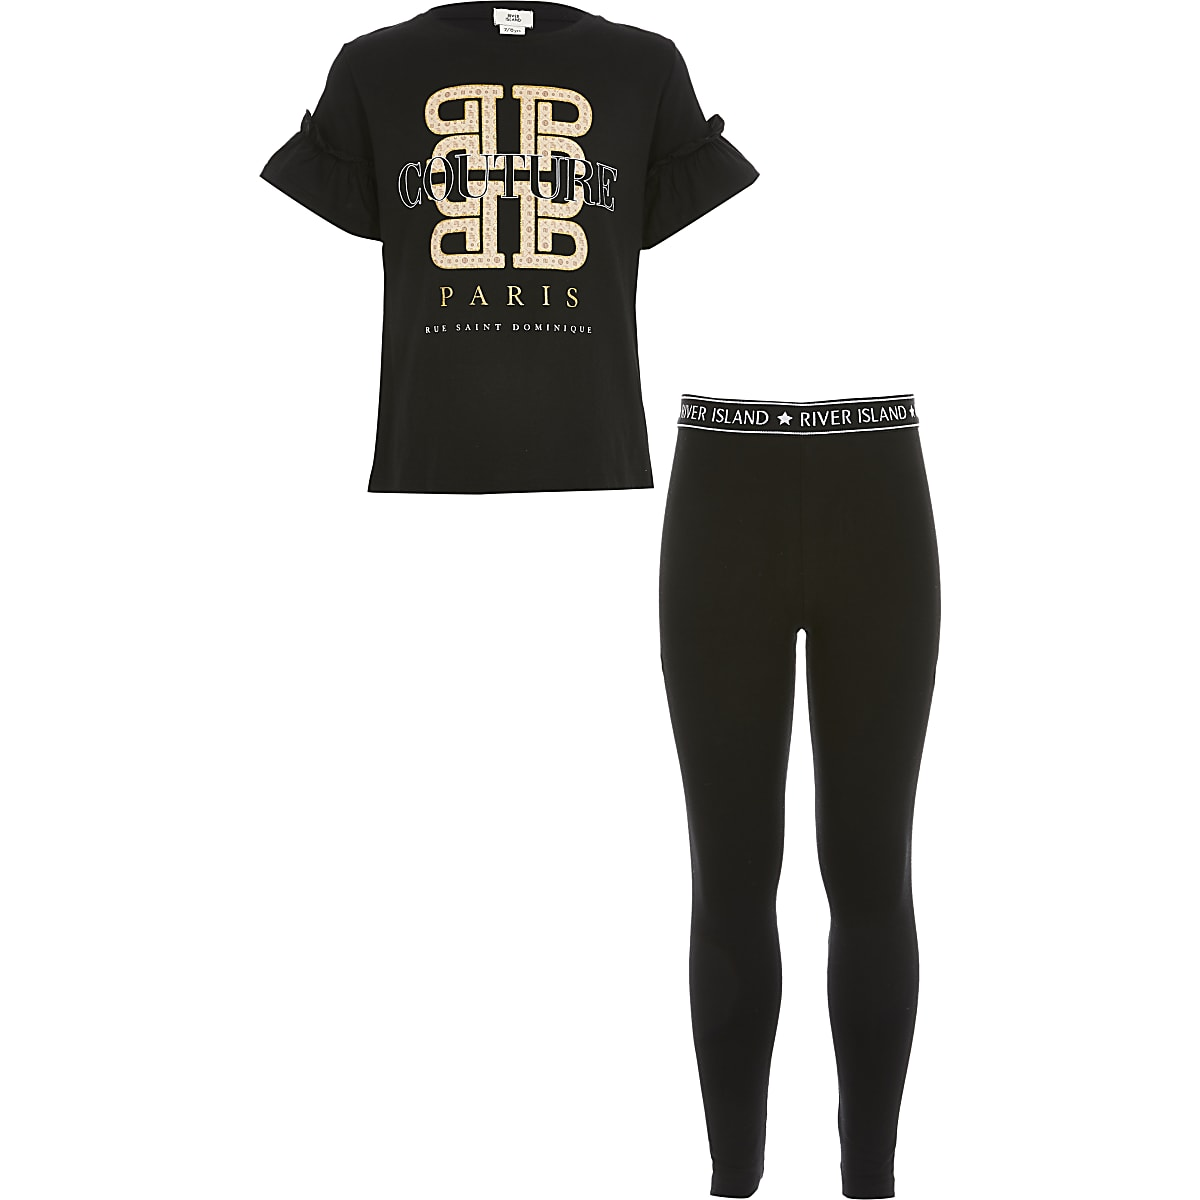 Girls black printed frill T-shirt outfit